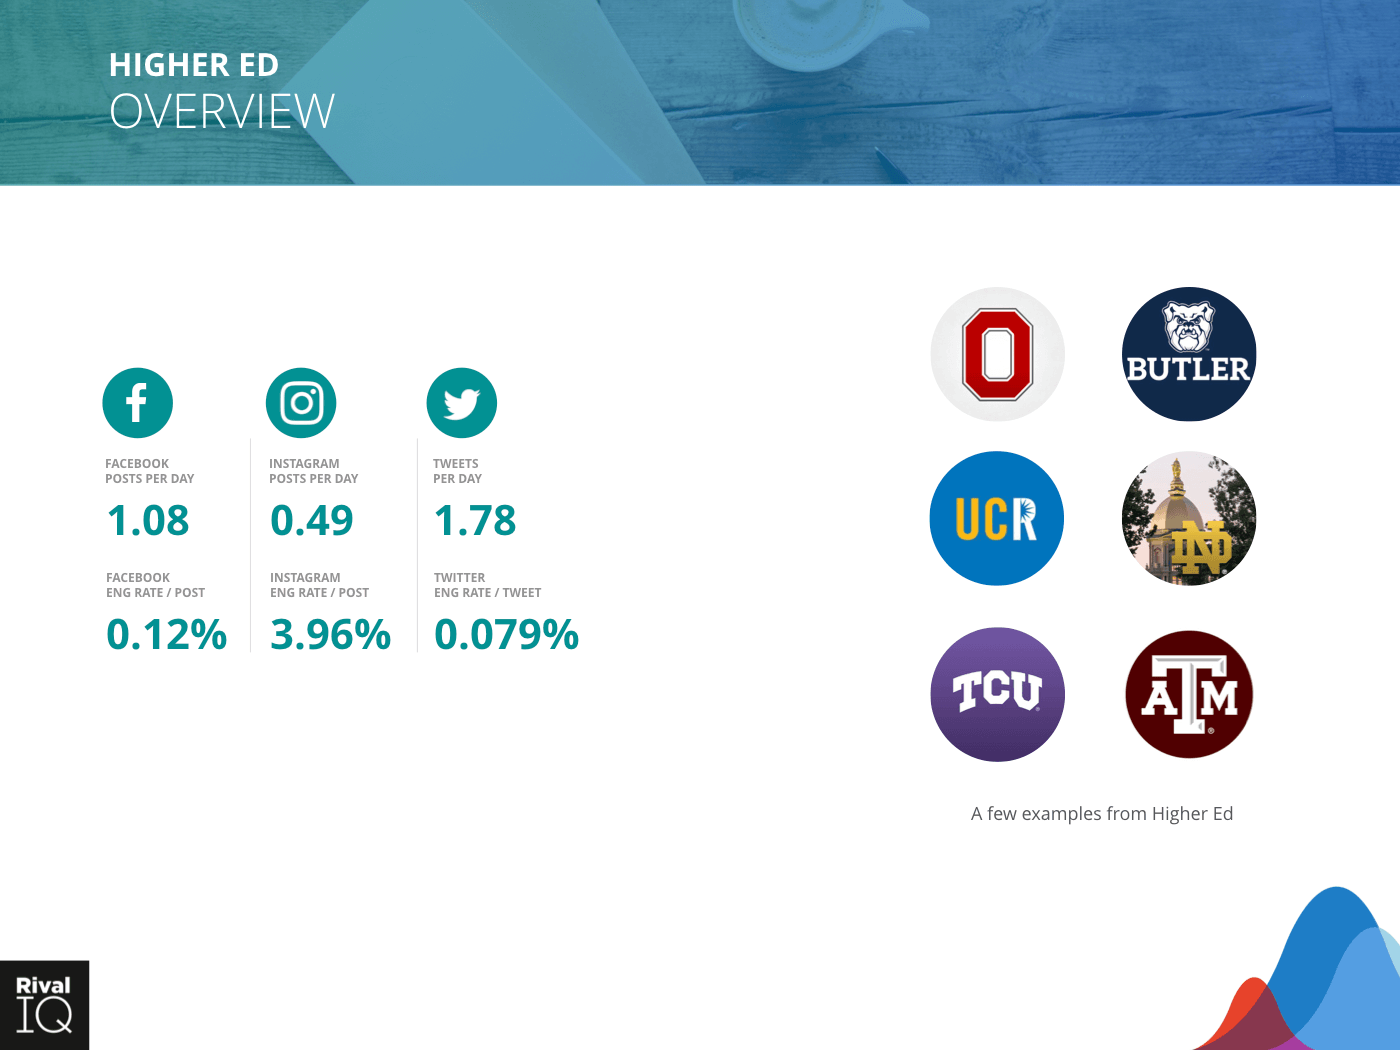 Higher Ed Industry: brand examples and average metrics, all channels